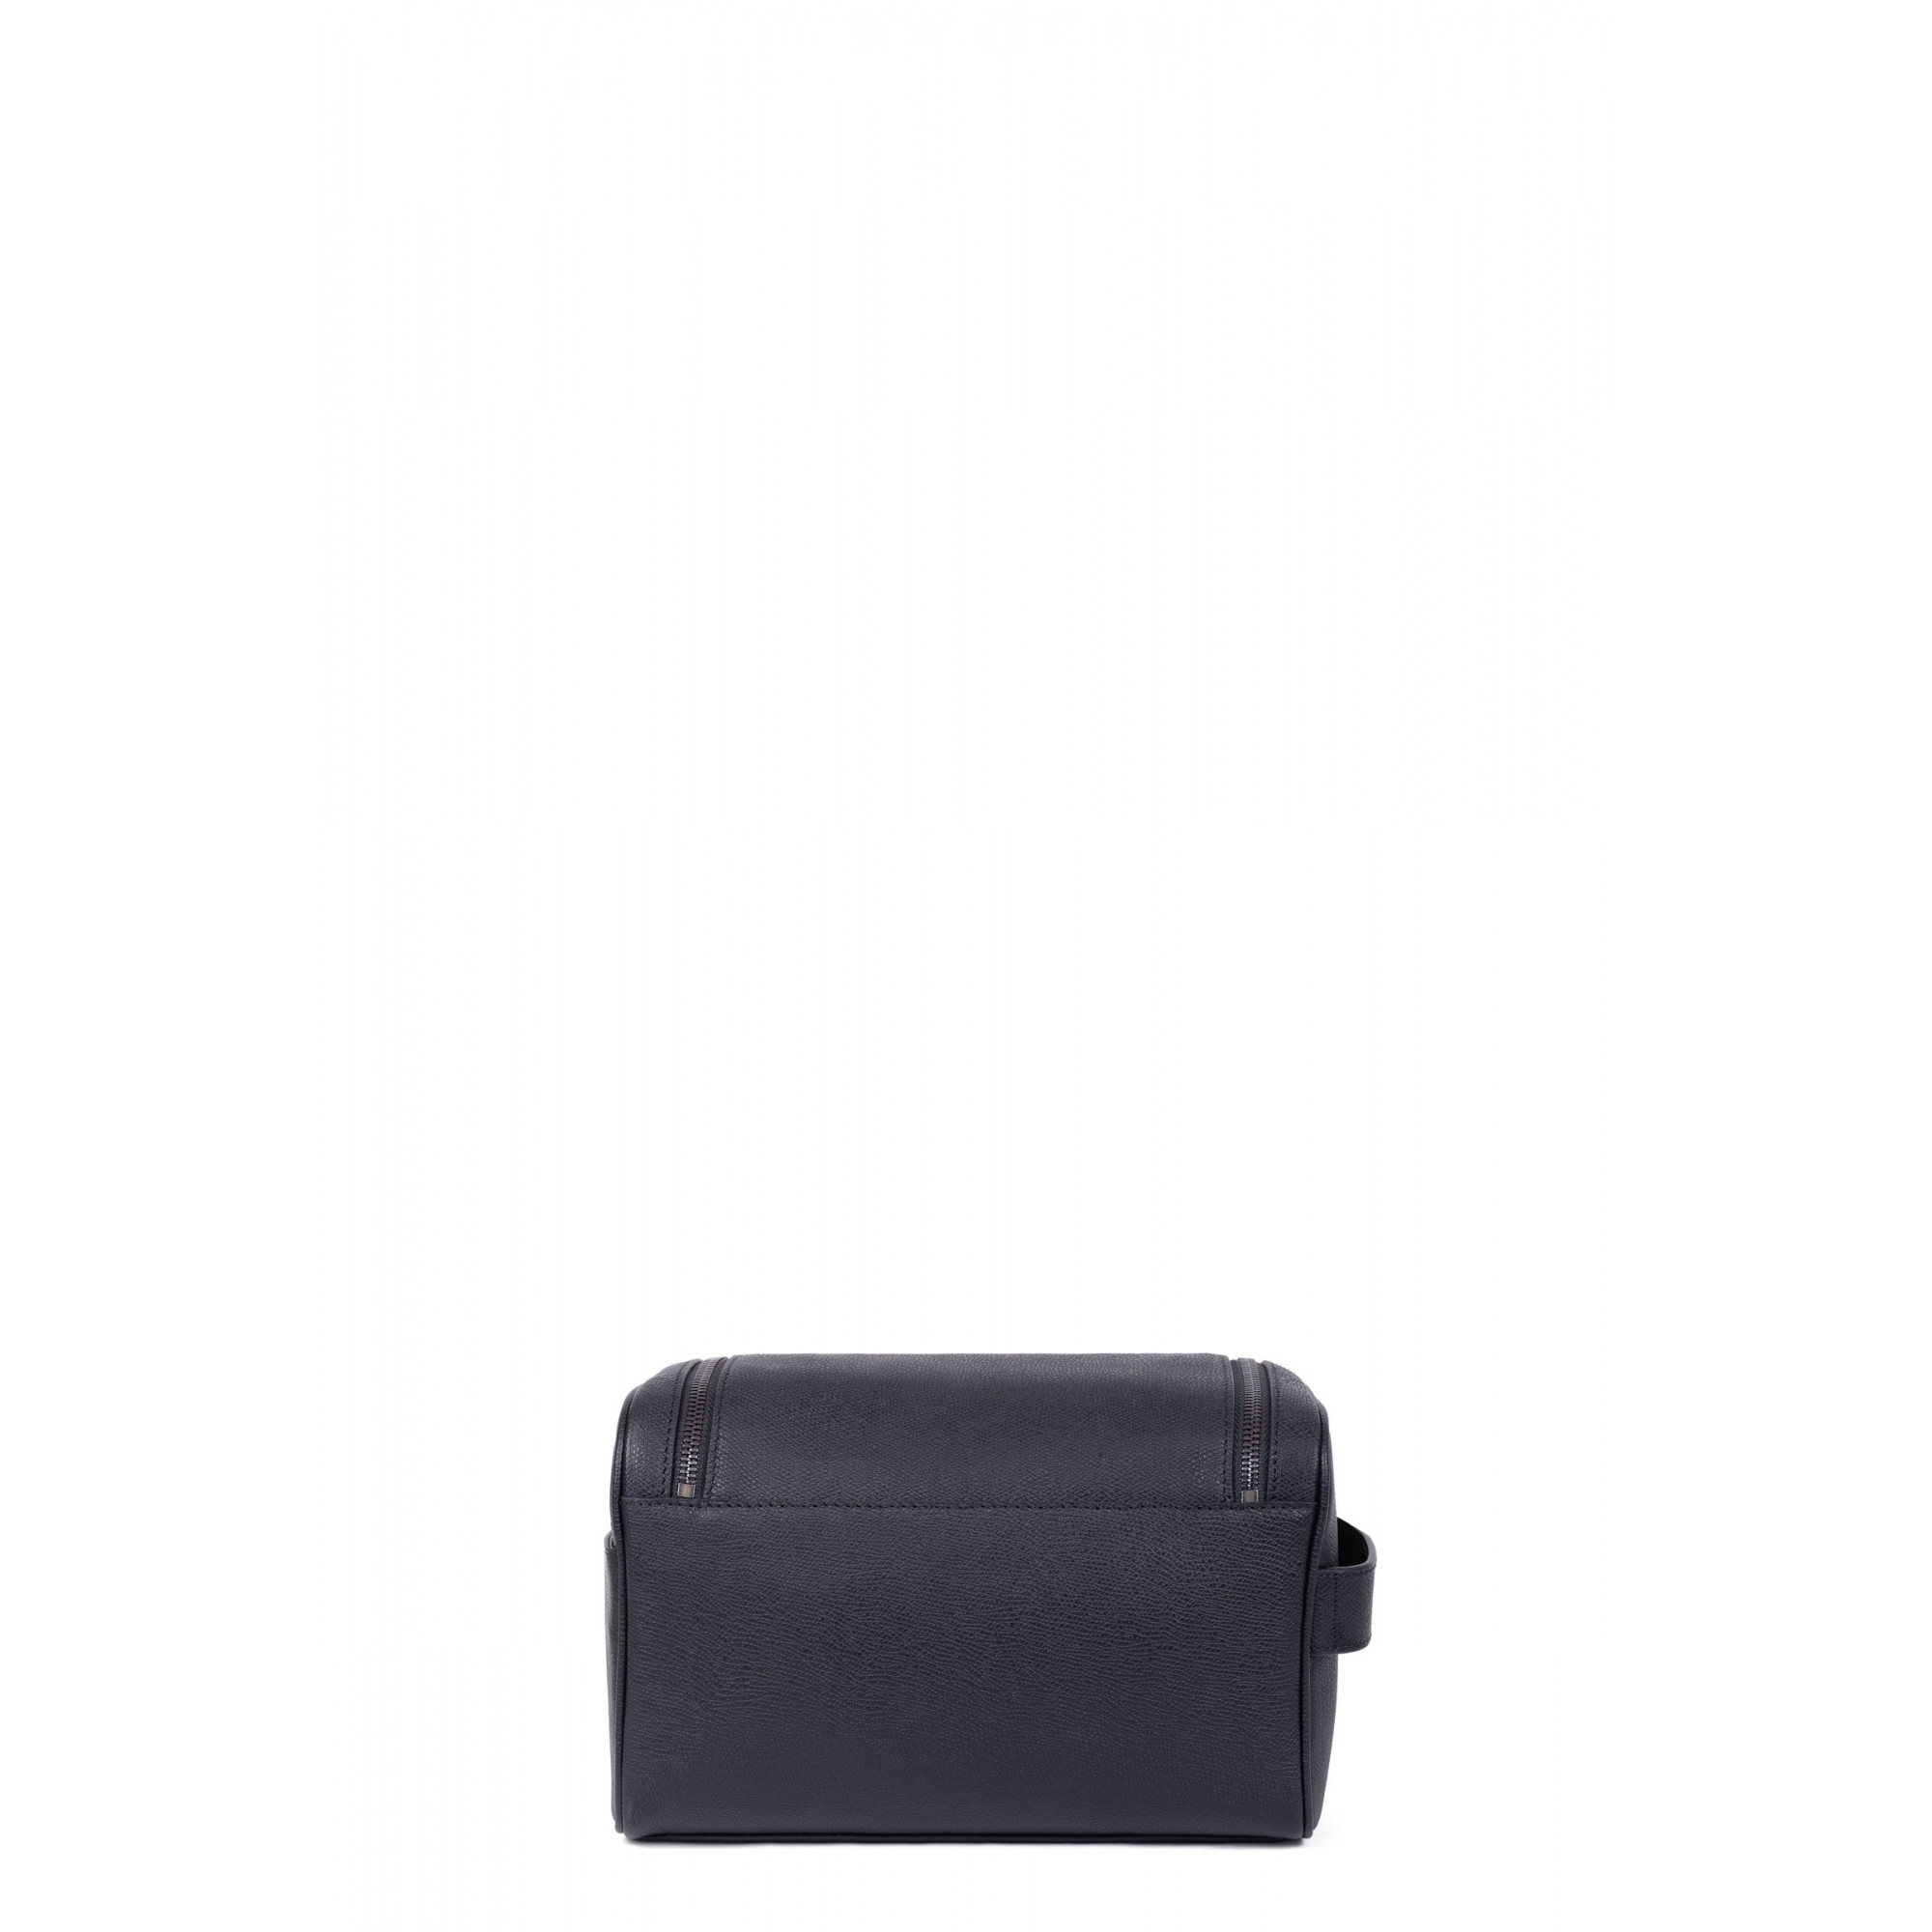 Premium grained leather toiletry bag